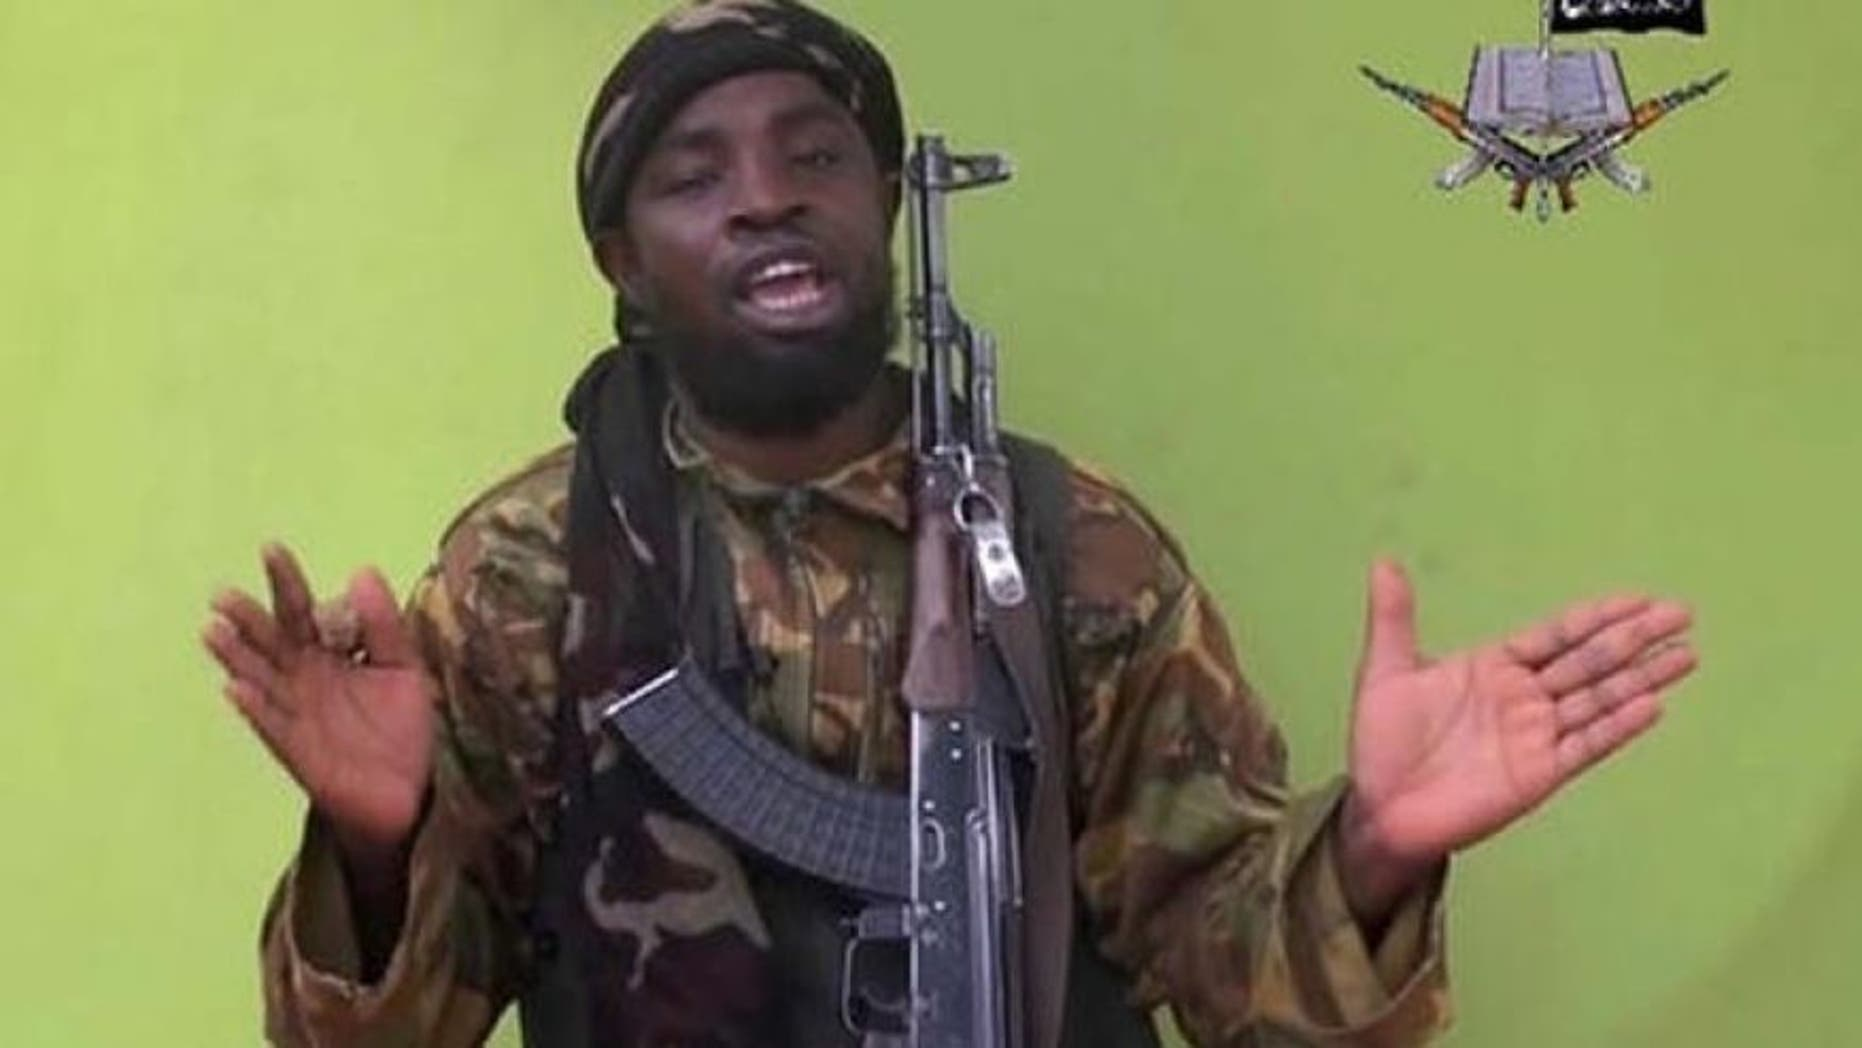 Photo taken from video by Nigeria's Boko Haram terrorist network in 2014 shows their leader Abubakar Shekau. (AP)